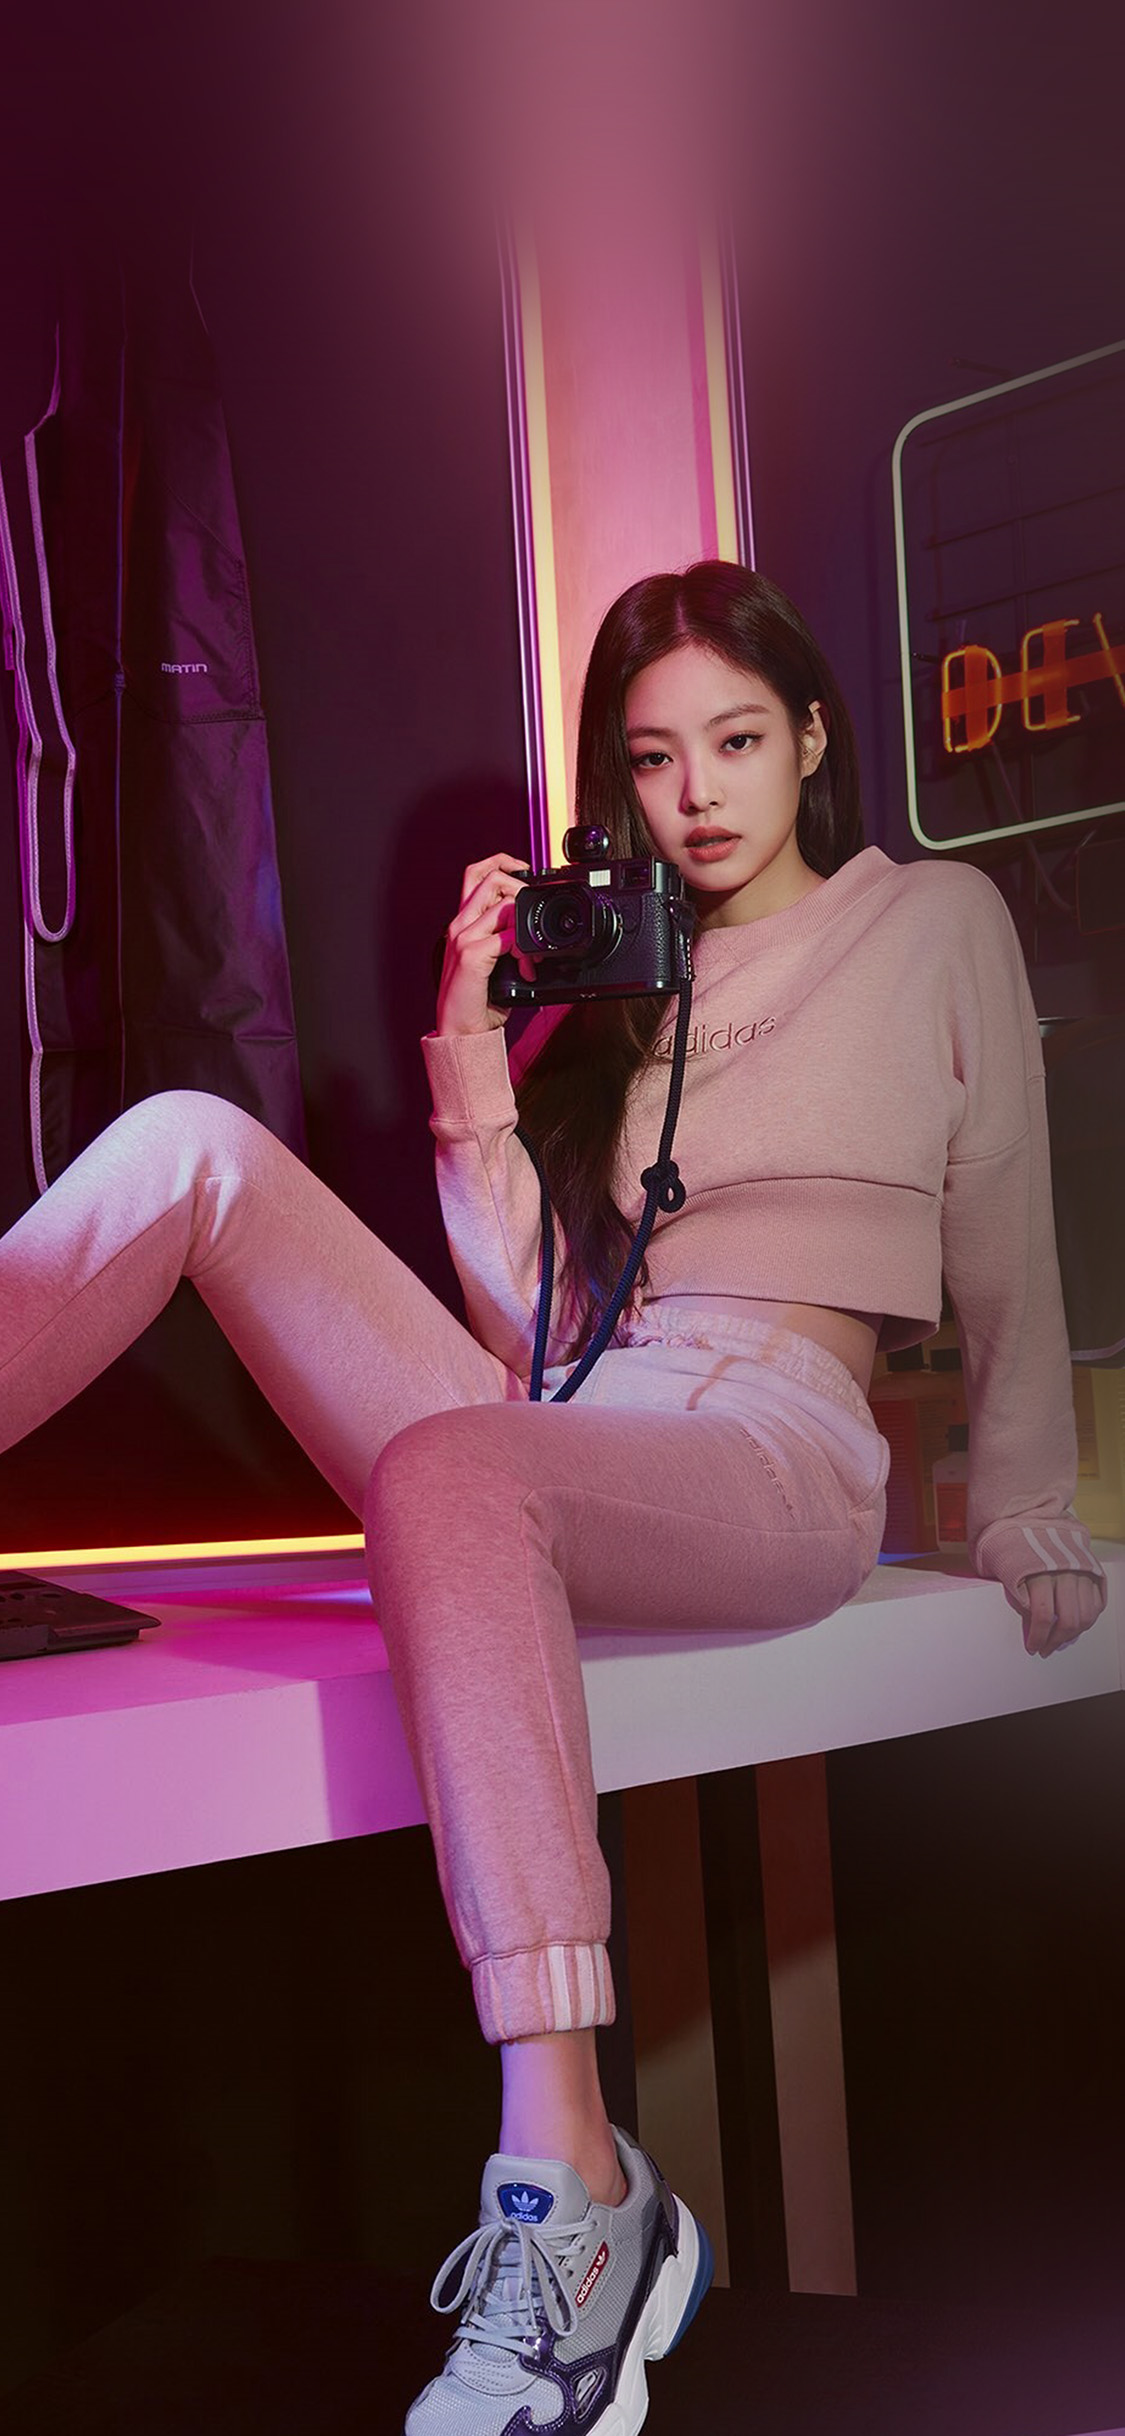 Iphonexpapers Com Iphone X Wallpaper Hr86 Asian Kpop Jennie Girl Blackpink